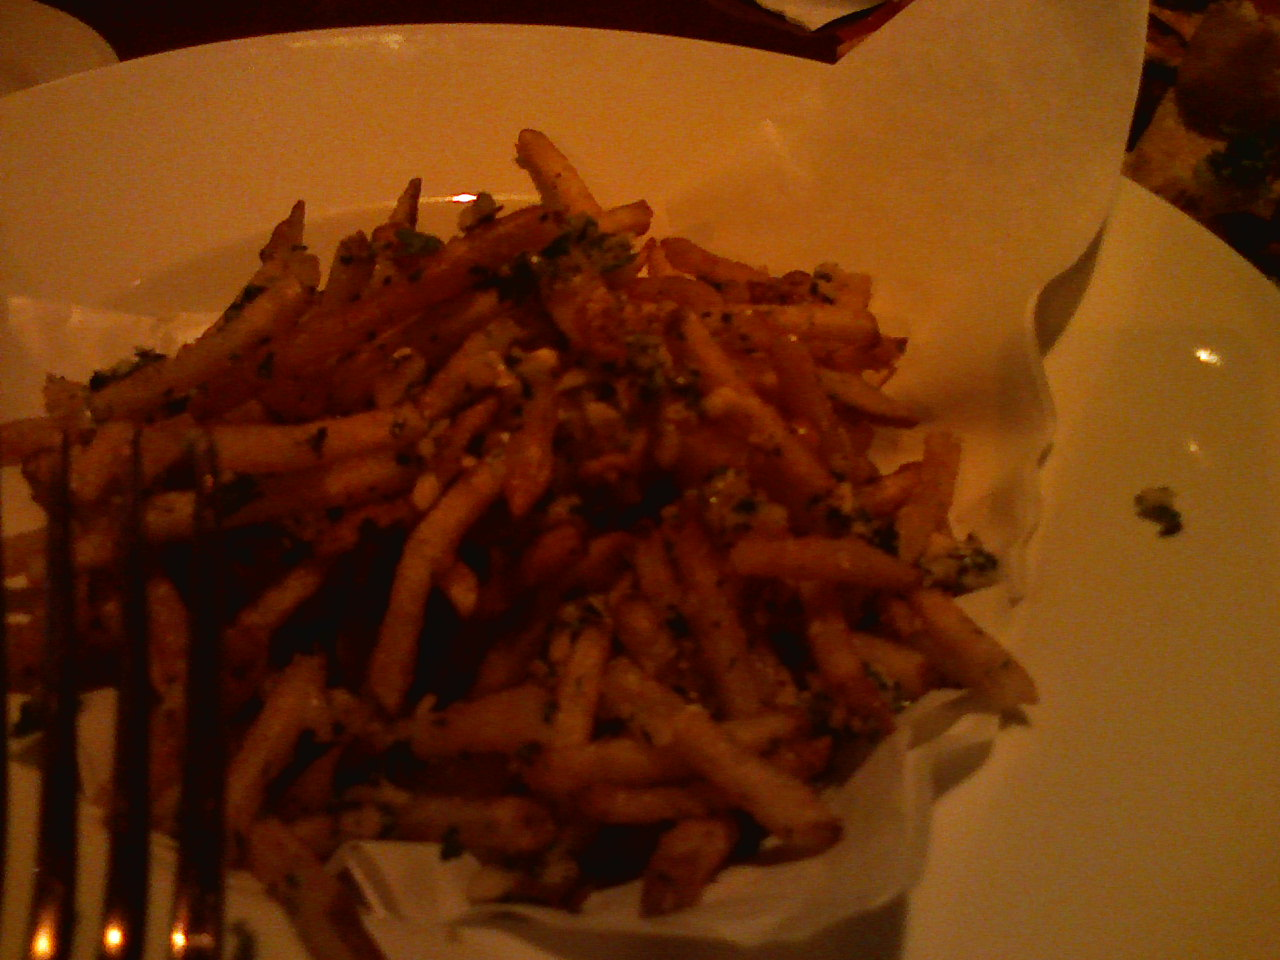 I love you Yardhouse garlic fries.